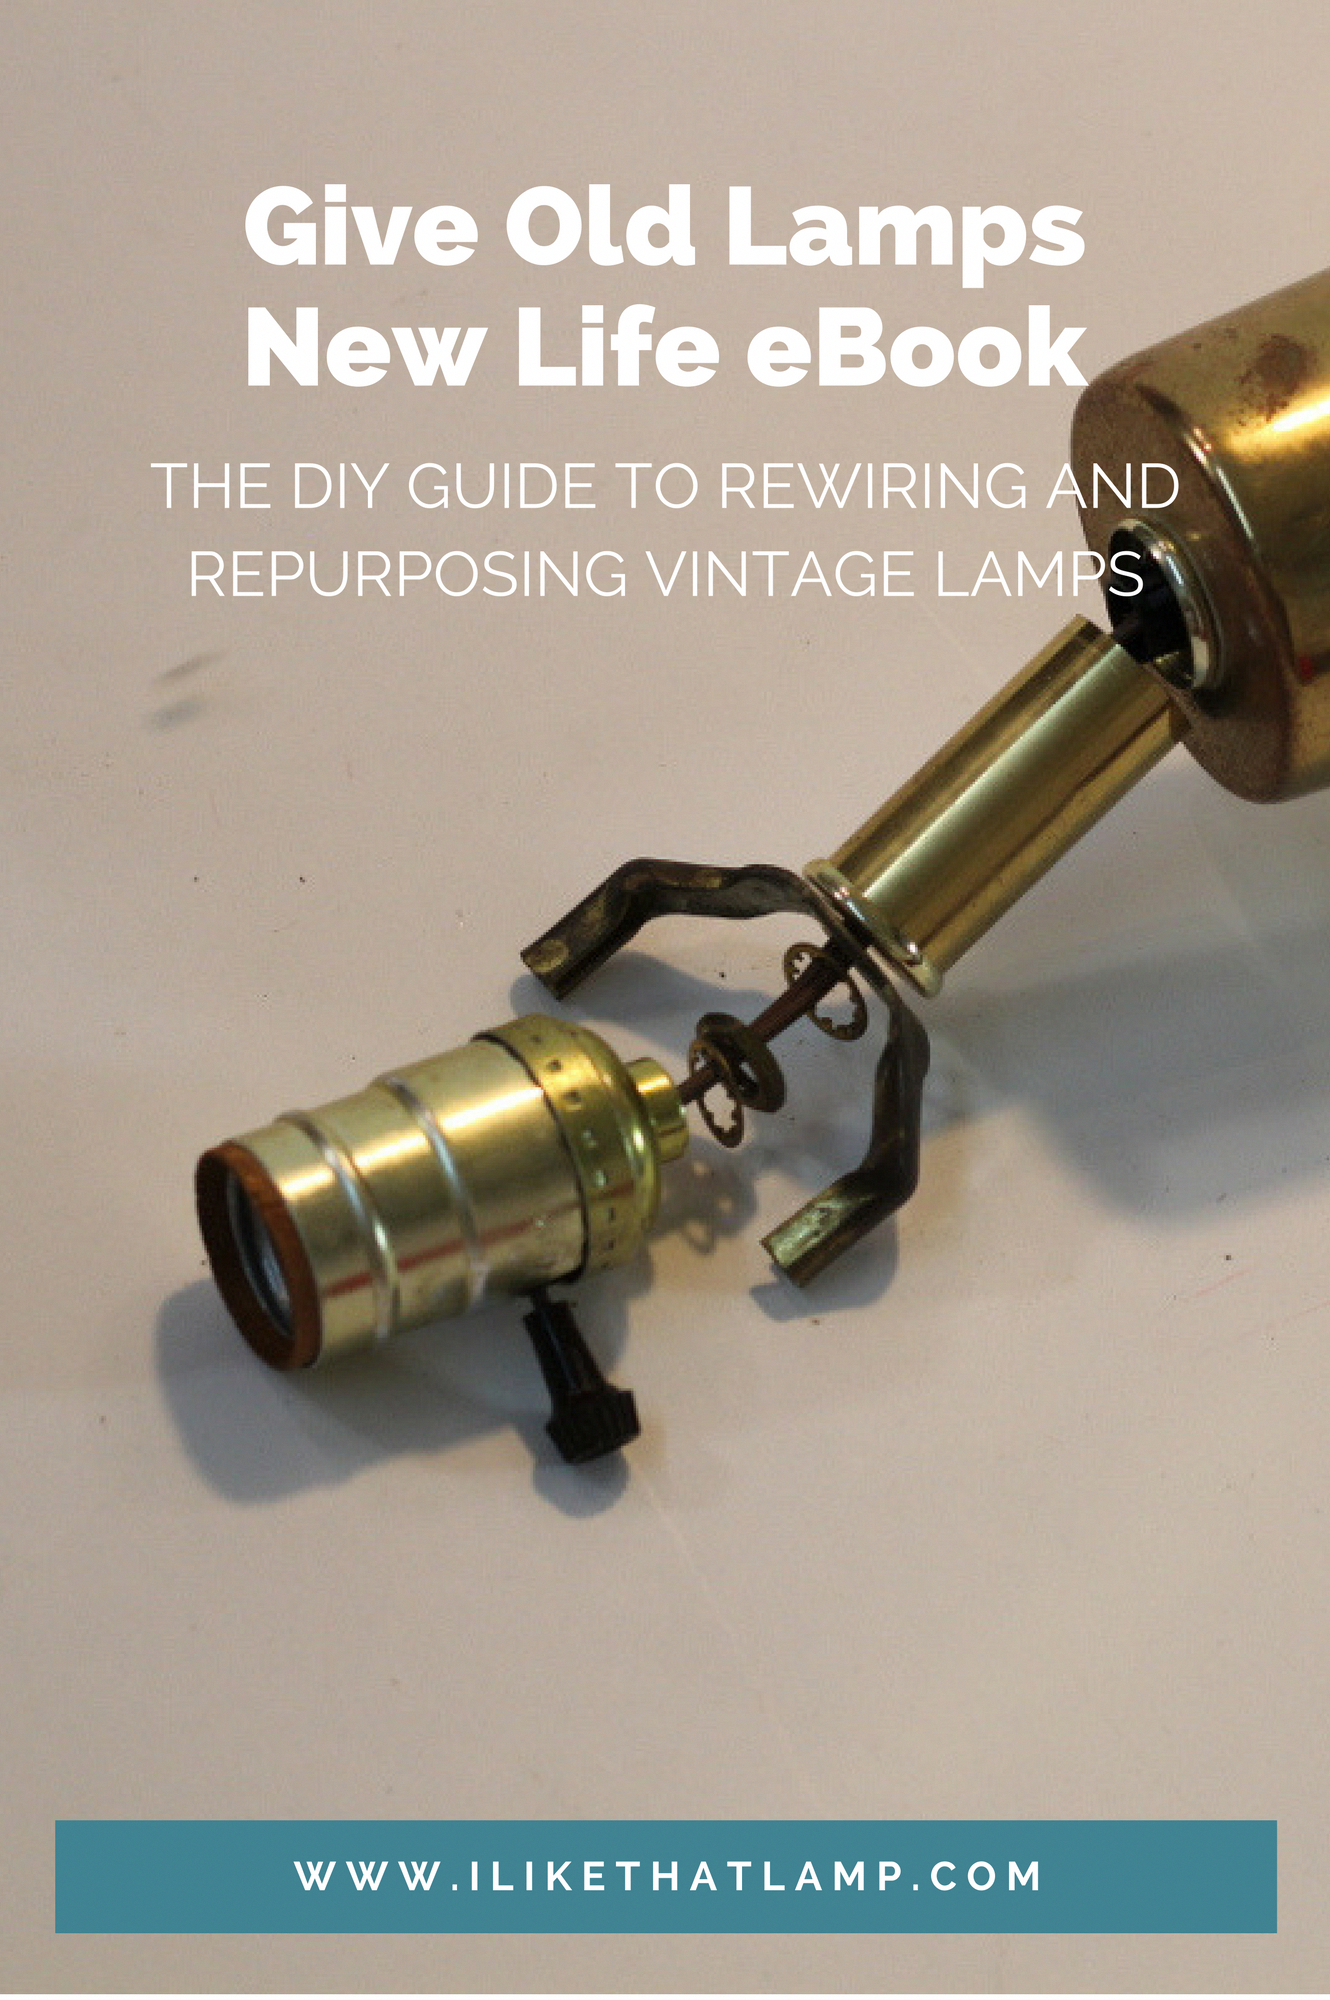 Incredible How To Rewire Old Lamps And Repurpose Vintage Lamps Full Diy Guide Wiring Digital Resources Operpmognl